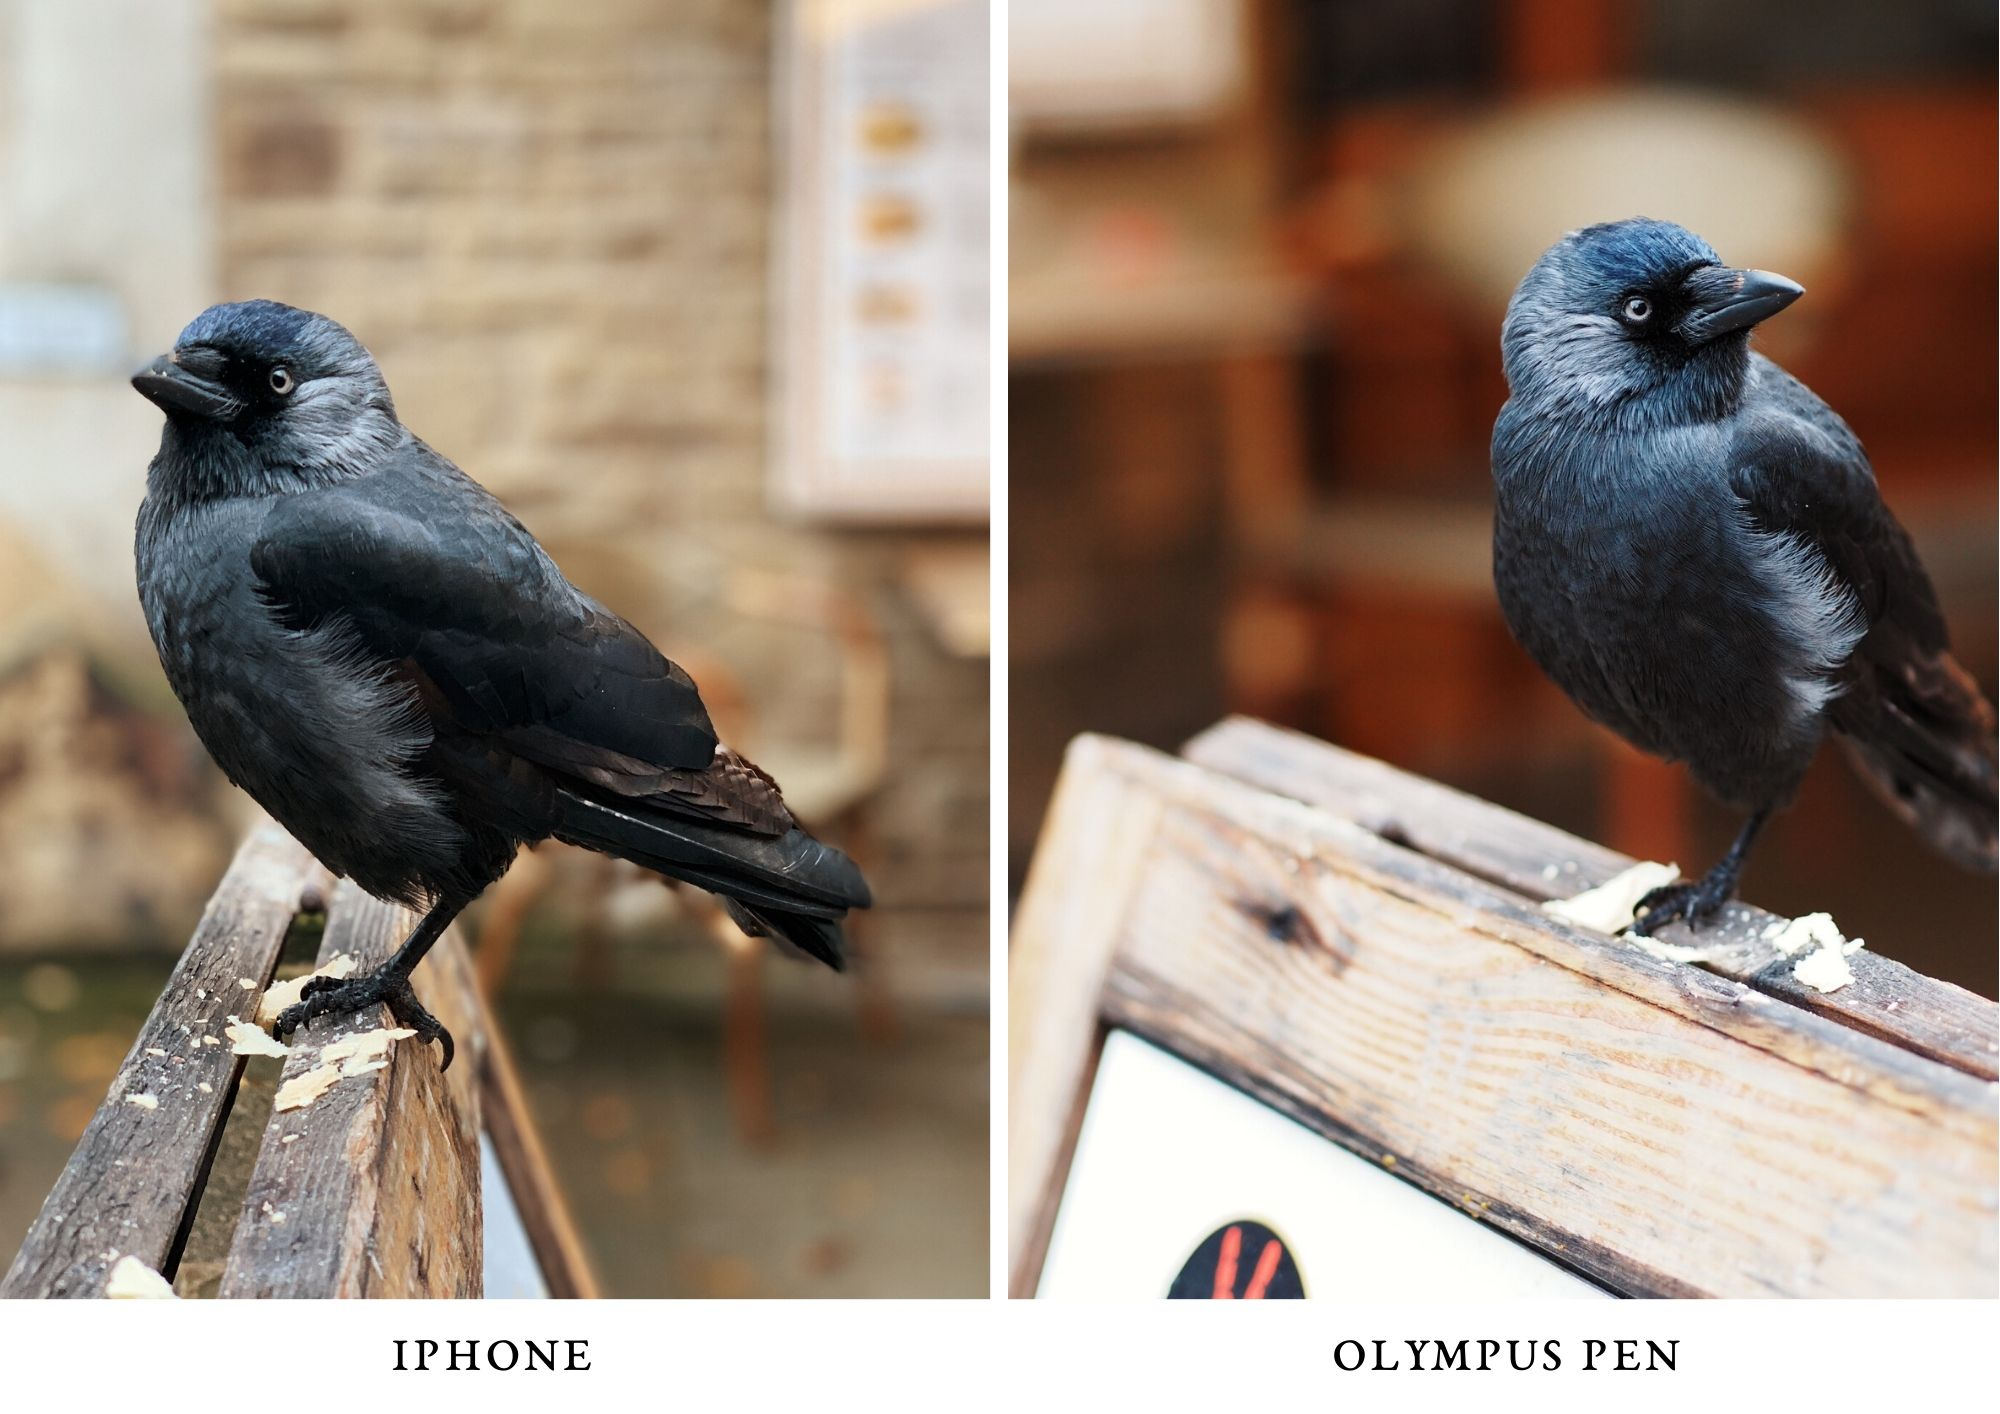 jackdaw - photo olympus PEN and iPhone comparison